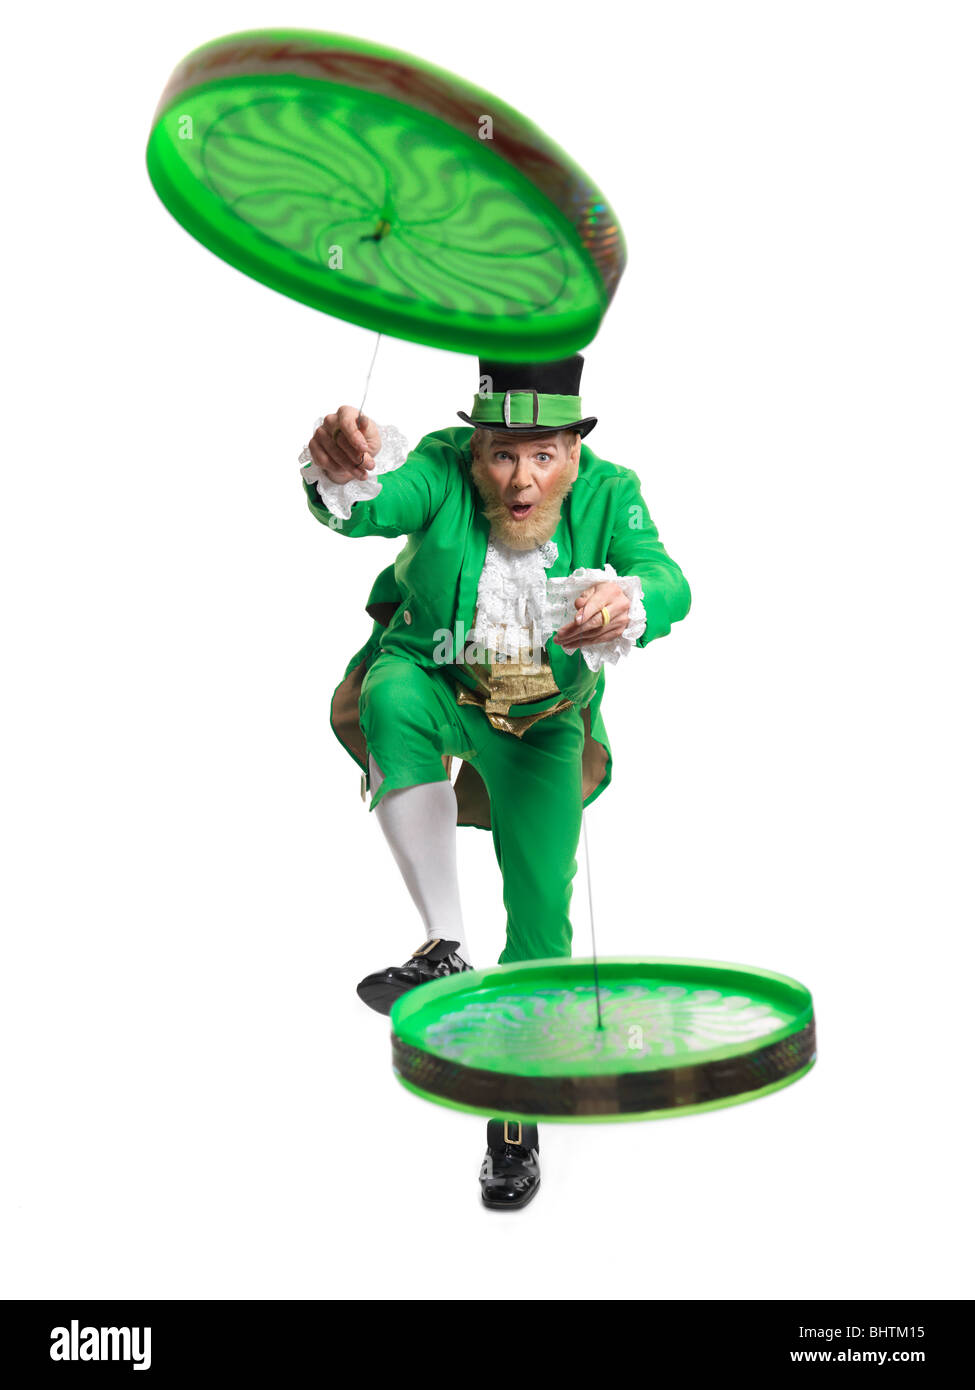 Cheerful Leprechaun playing with two flip n flyers isolated on white background - Stock Image